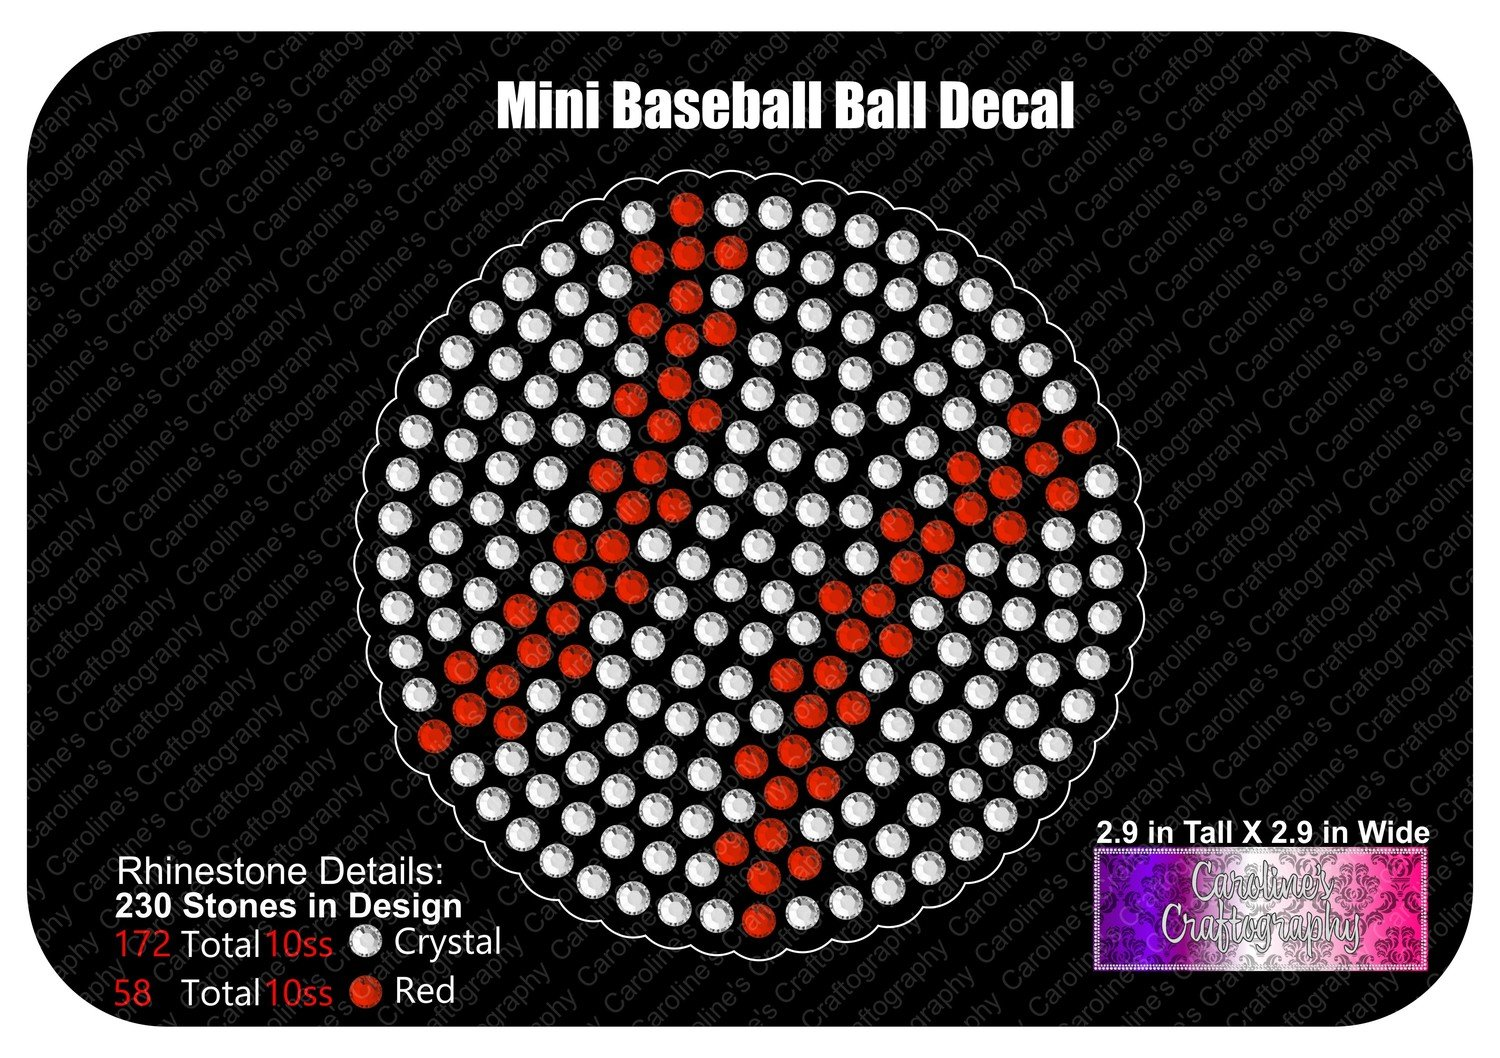 Mini Baseball Ball Decal